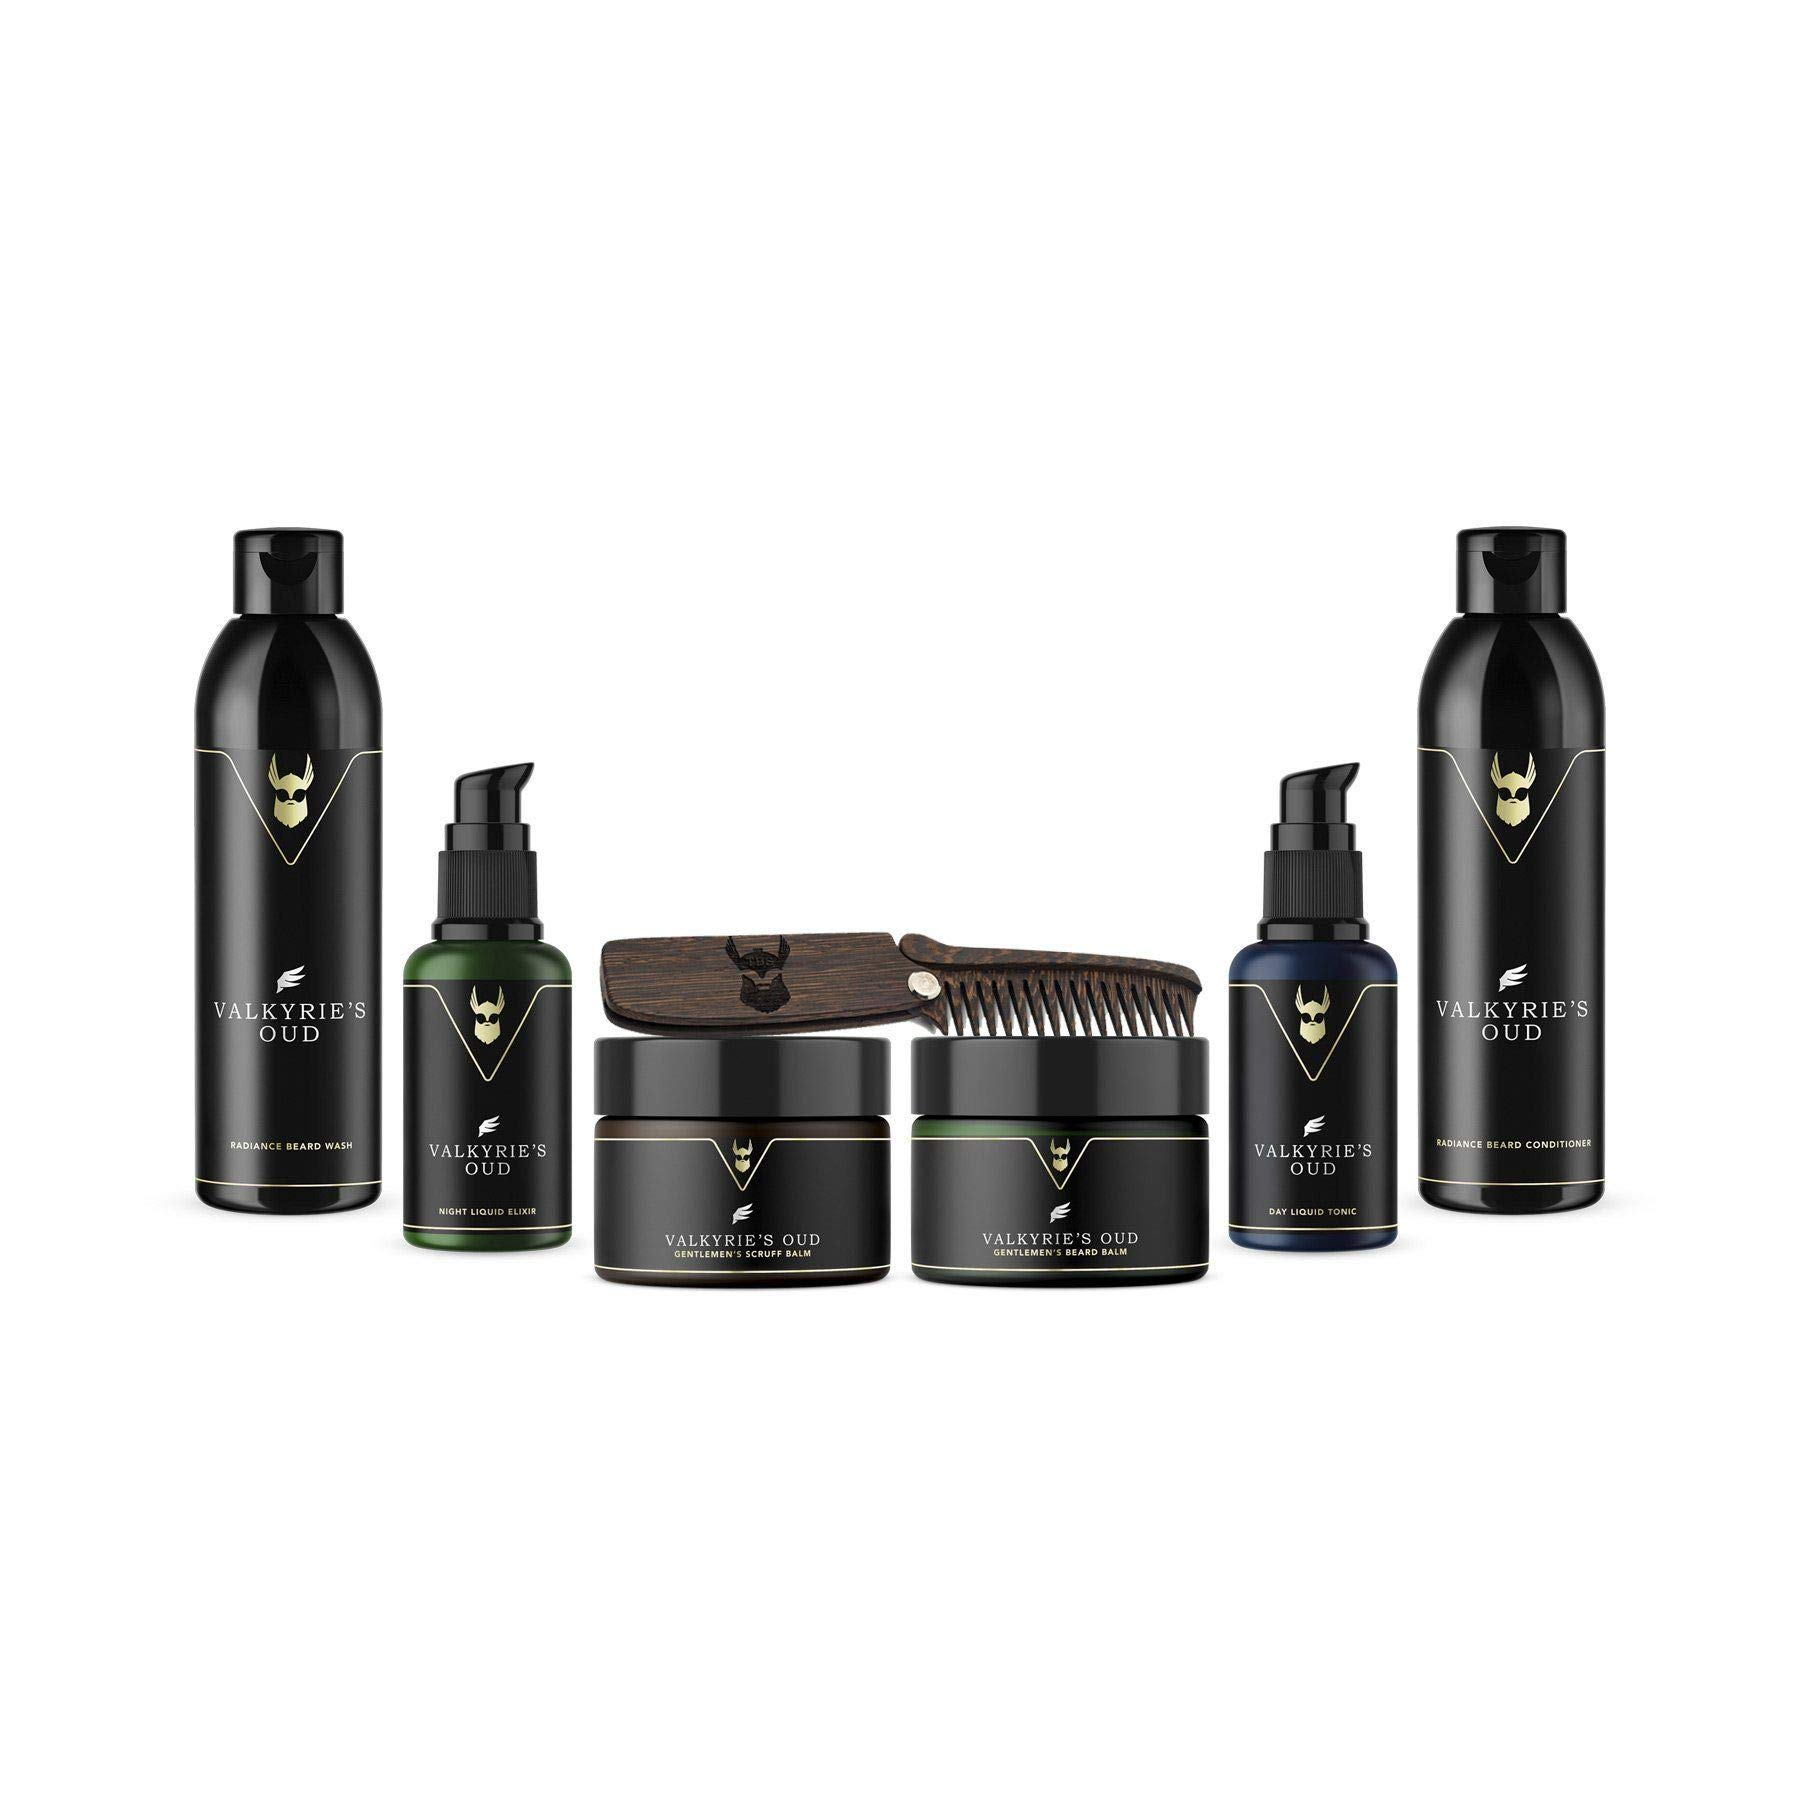 The Beard Struggle Ultimate Kit Viking Honour for Men & Beard Care W/Beard Wash/Shampoo/Conditioner/Night oil/Day oil,100% Natural & Organic